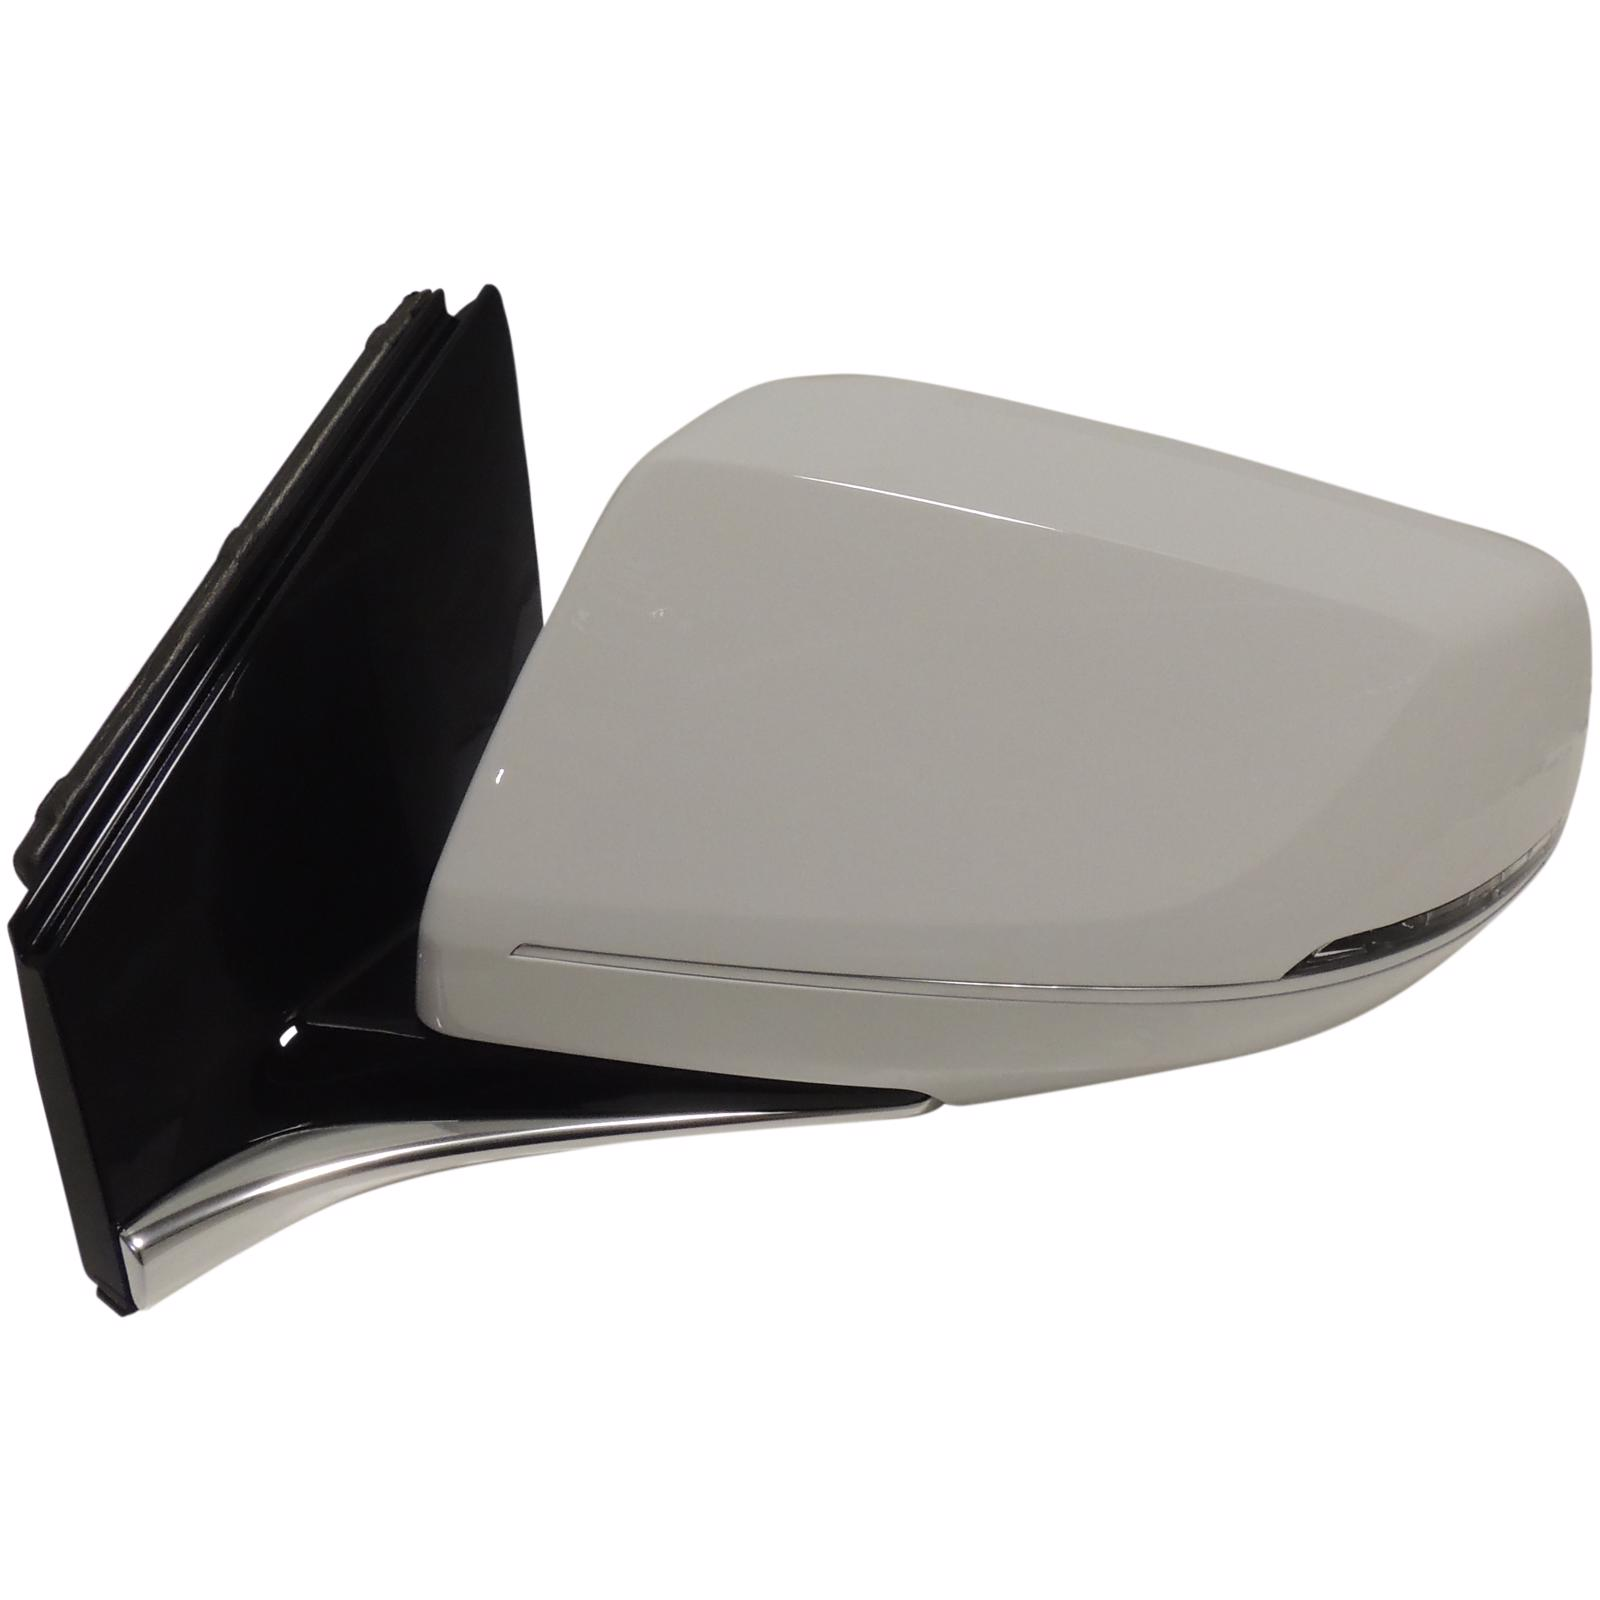 New OEM Mirror Fits 2013 2014 2015 Cadillac XTS WHITE Right Passenger Side